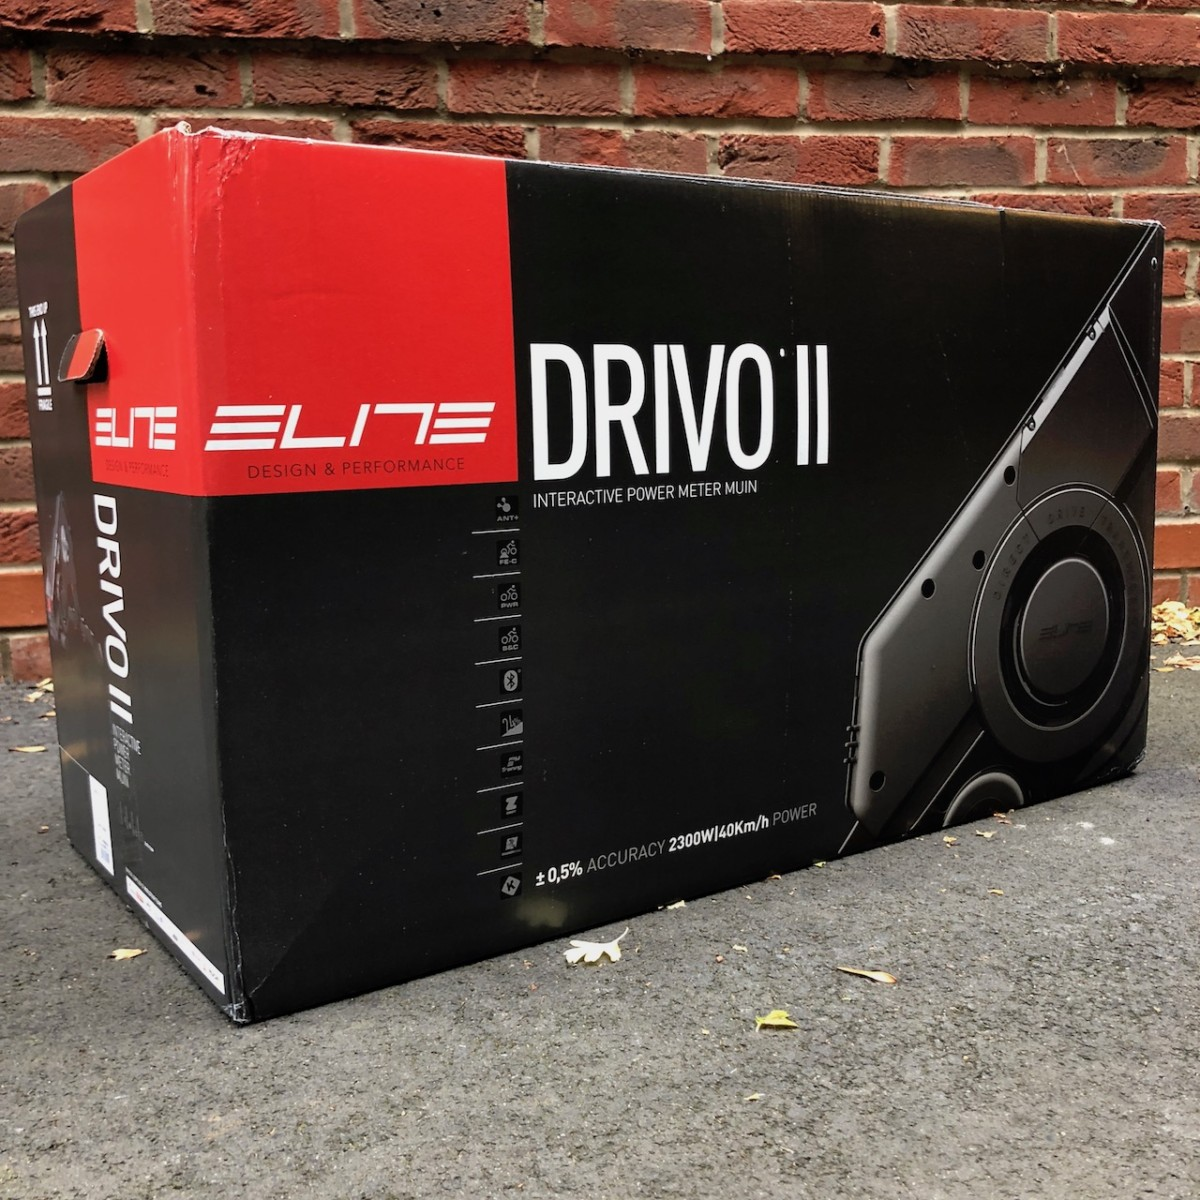 TitaniumGeek IMG 4045 Elite Drivo II   Turbo Trainer Review | ZWIFT GEAR TEST Cycling Gear Reviews Smart Trainers  turbo triainer elite drivo ii elite Drivo   Image of IMG 4045